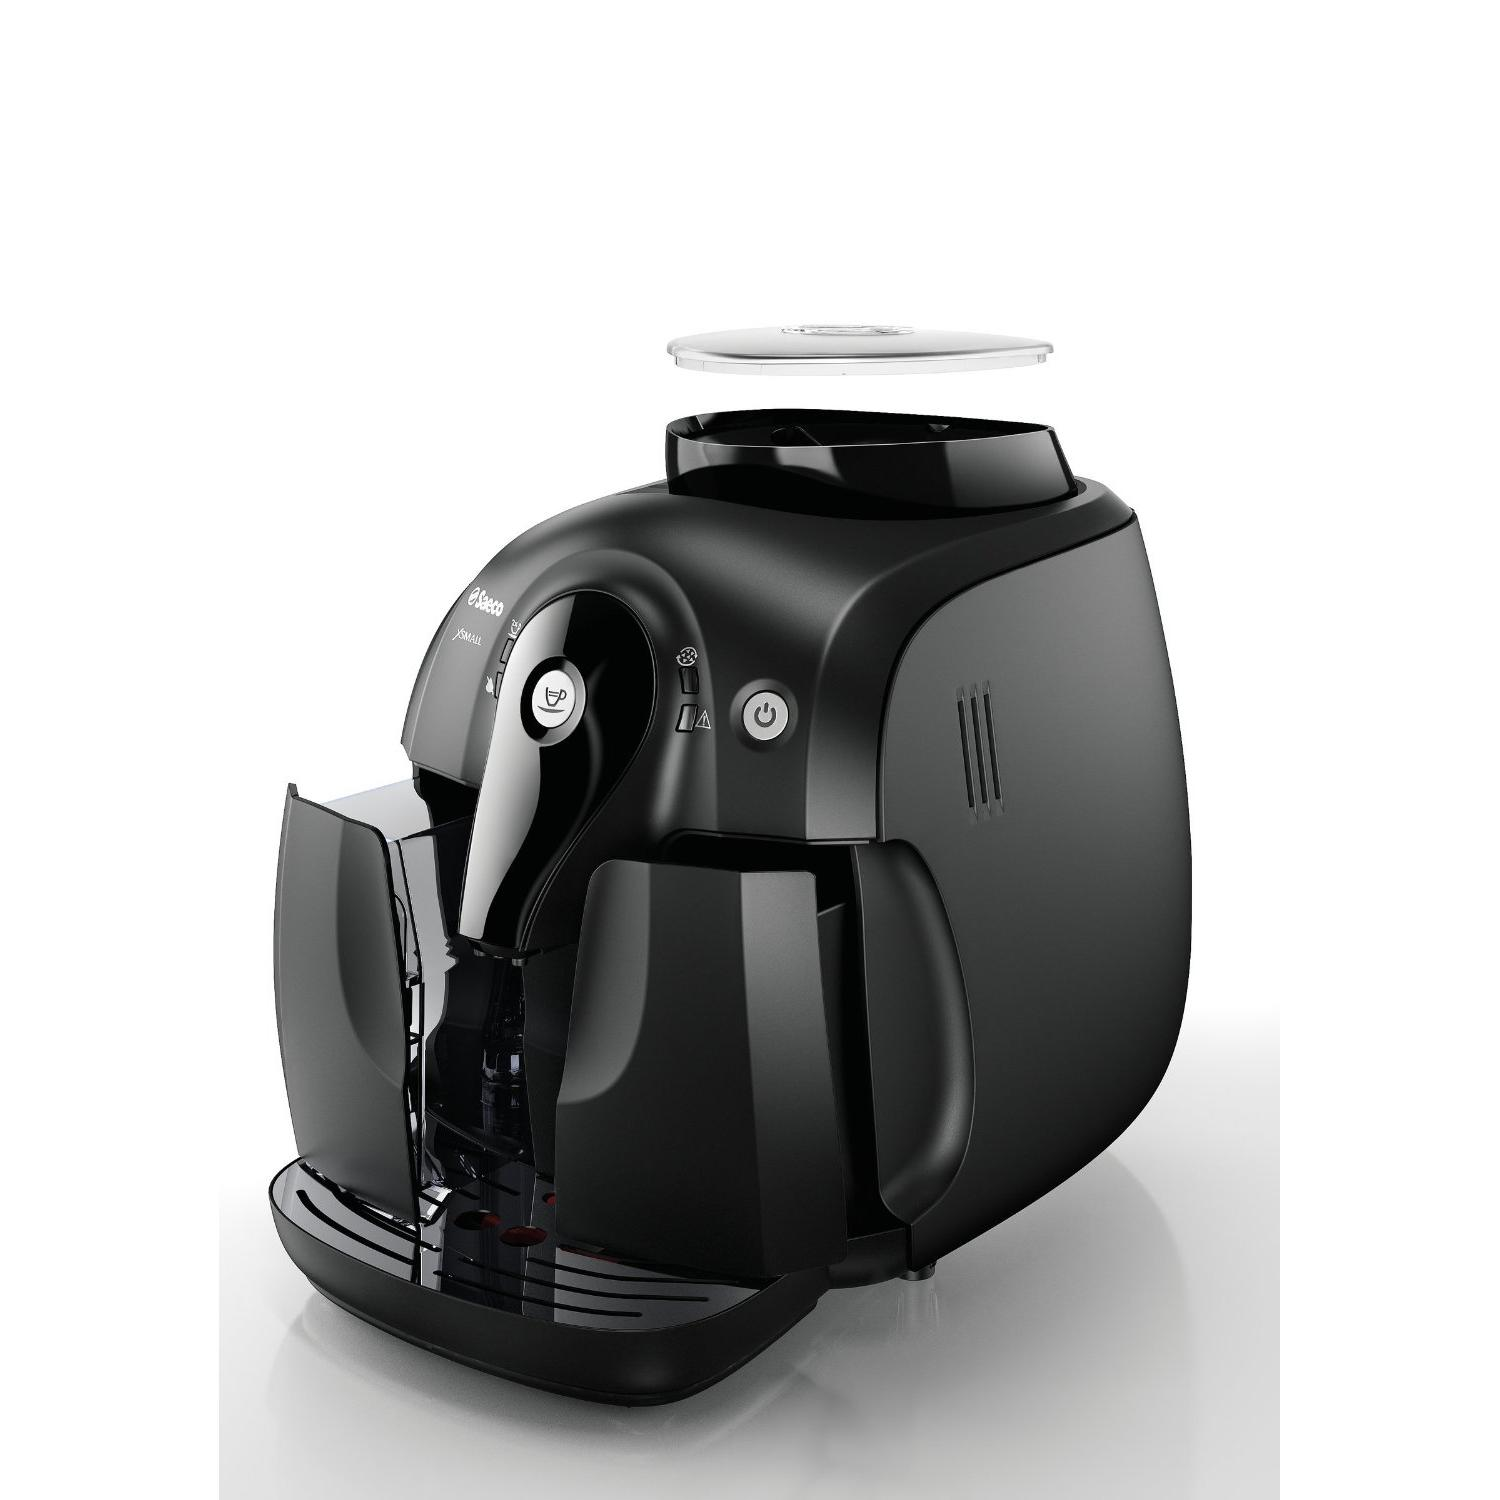 Cafetiere Philips Saeco Hd8643/01